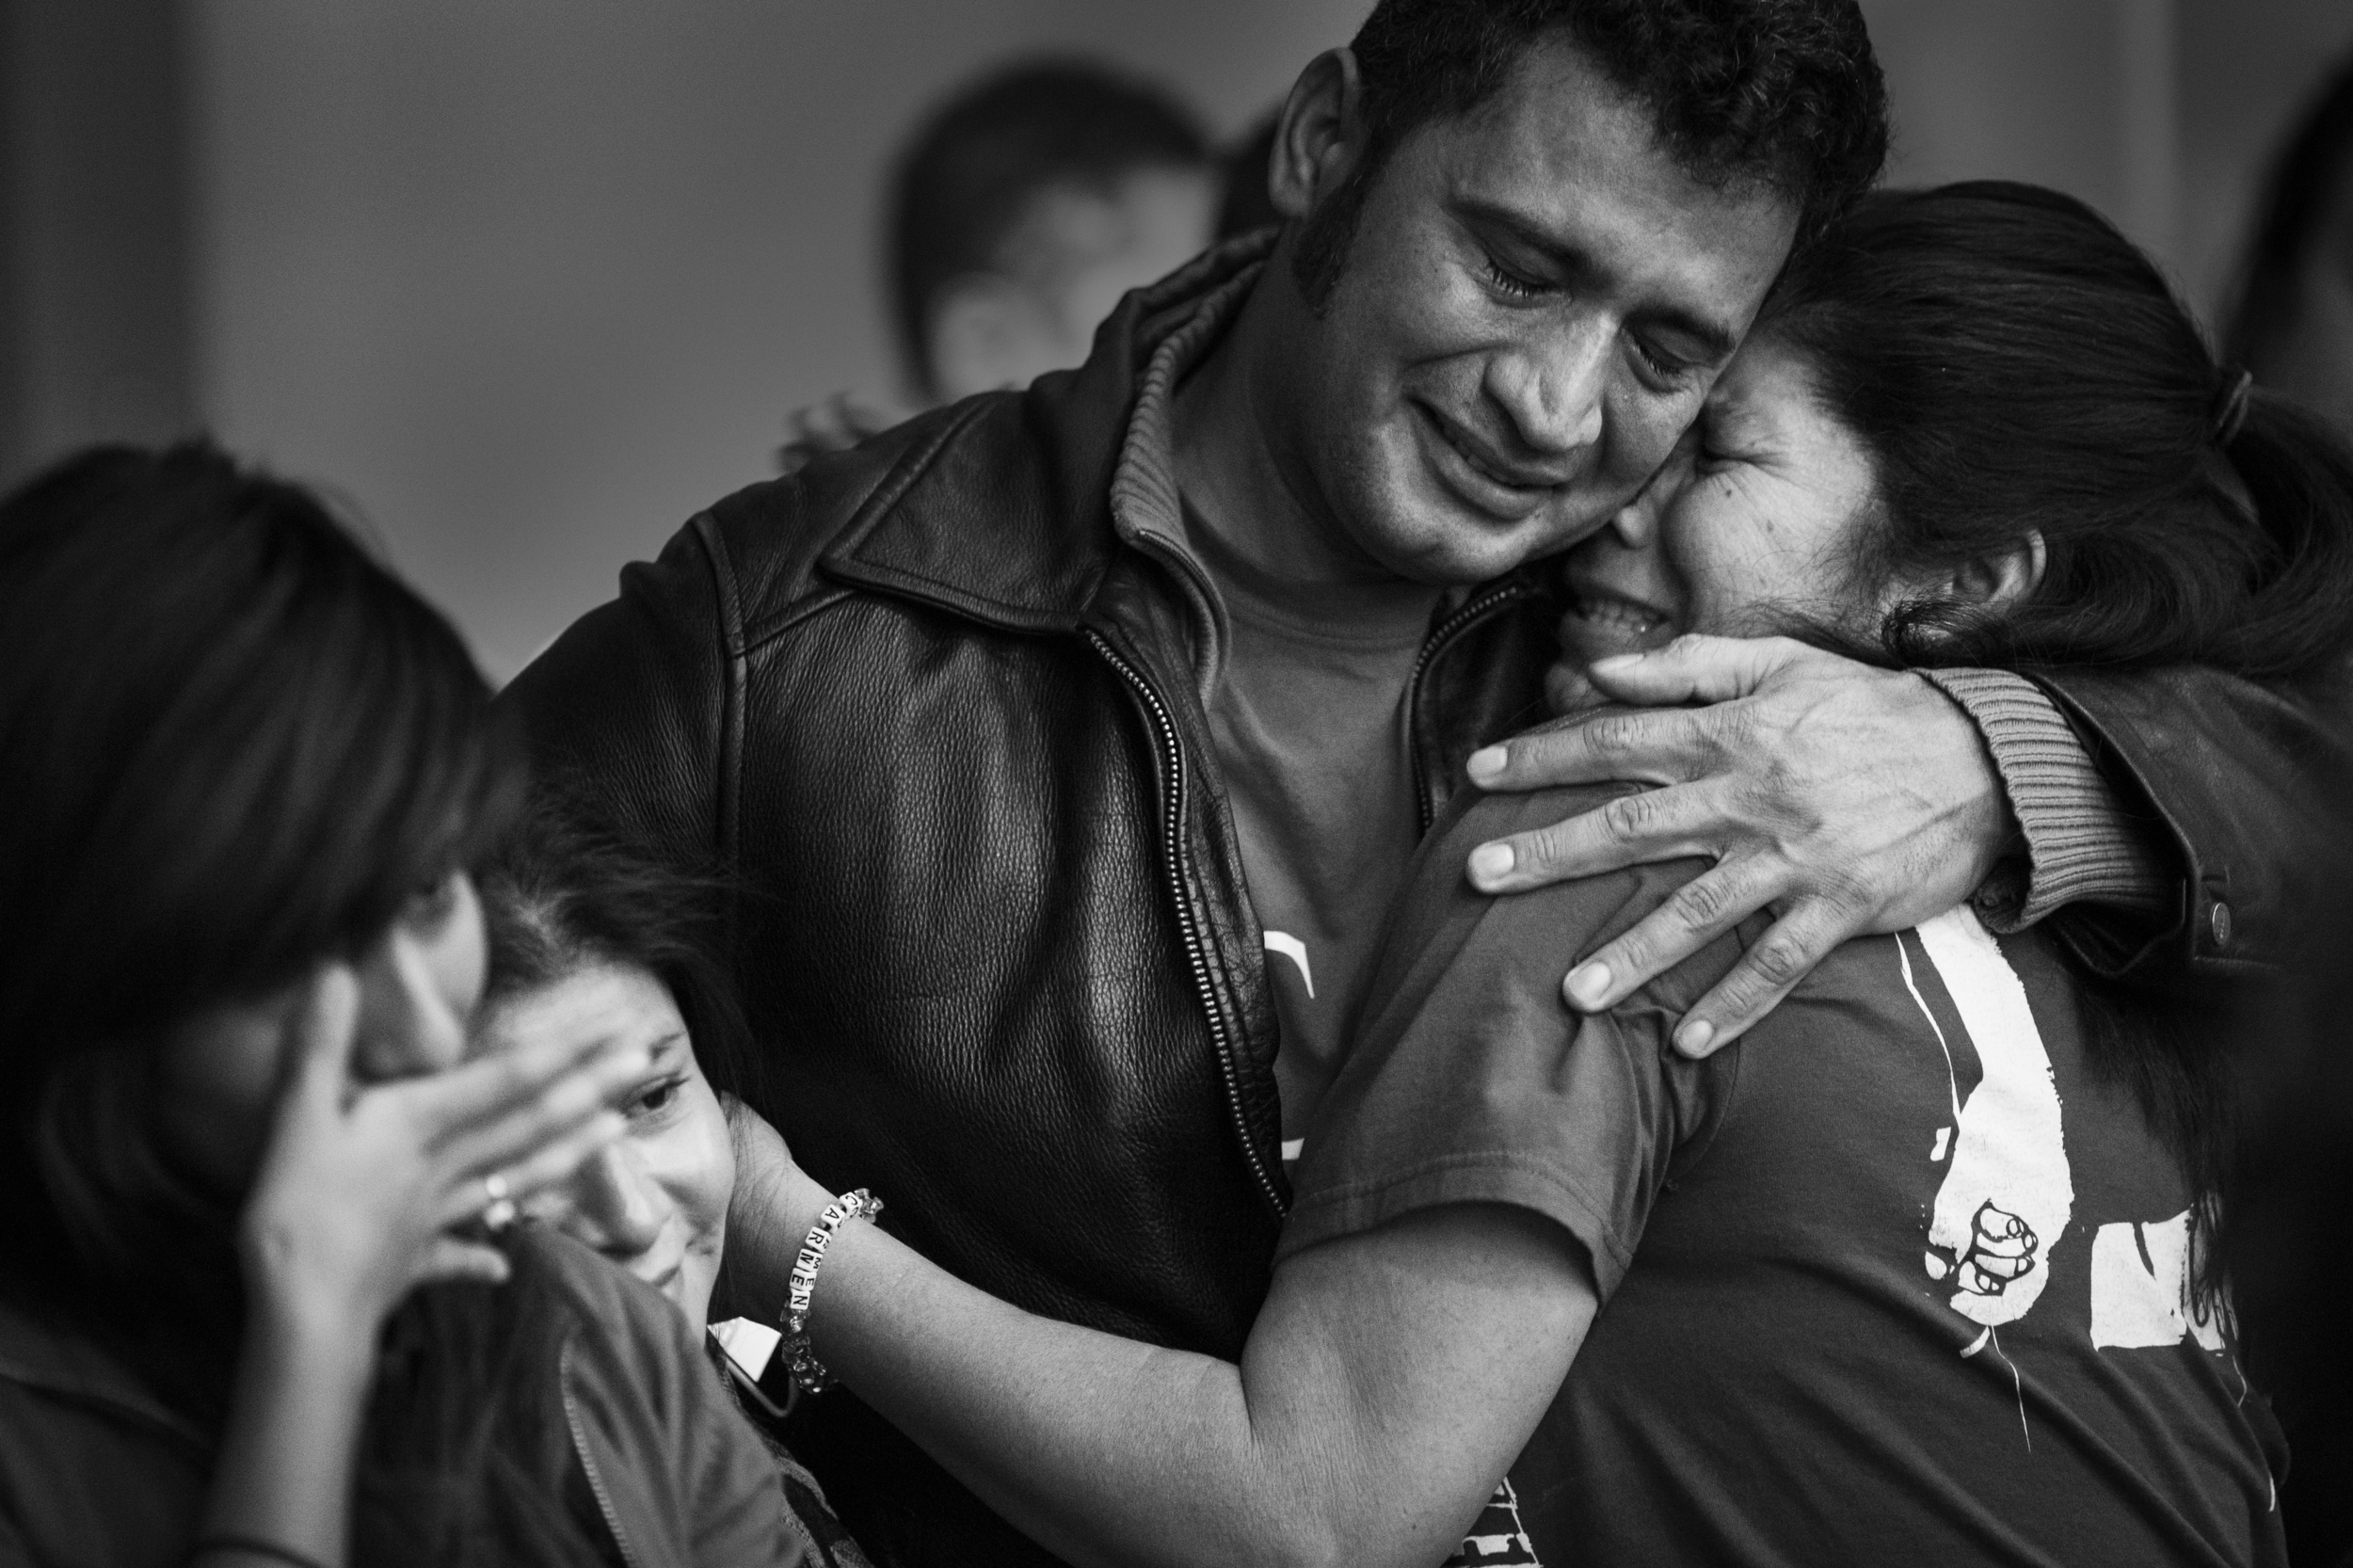 Oscar Alfaro hugs his aunt, Carmen Paz, who is like a mother, during a party to watch President Obama describe the outlines of his plans for temporary amnesty at Casa de Maryland in Hyattsville, MD on Thursday November 20, 2014.